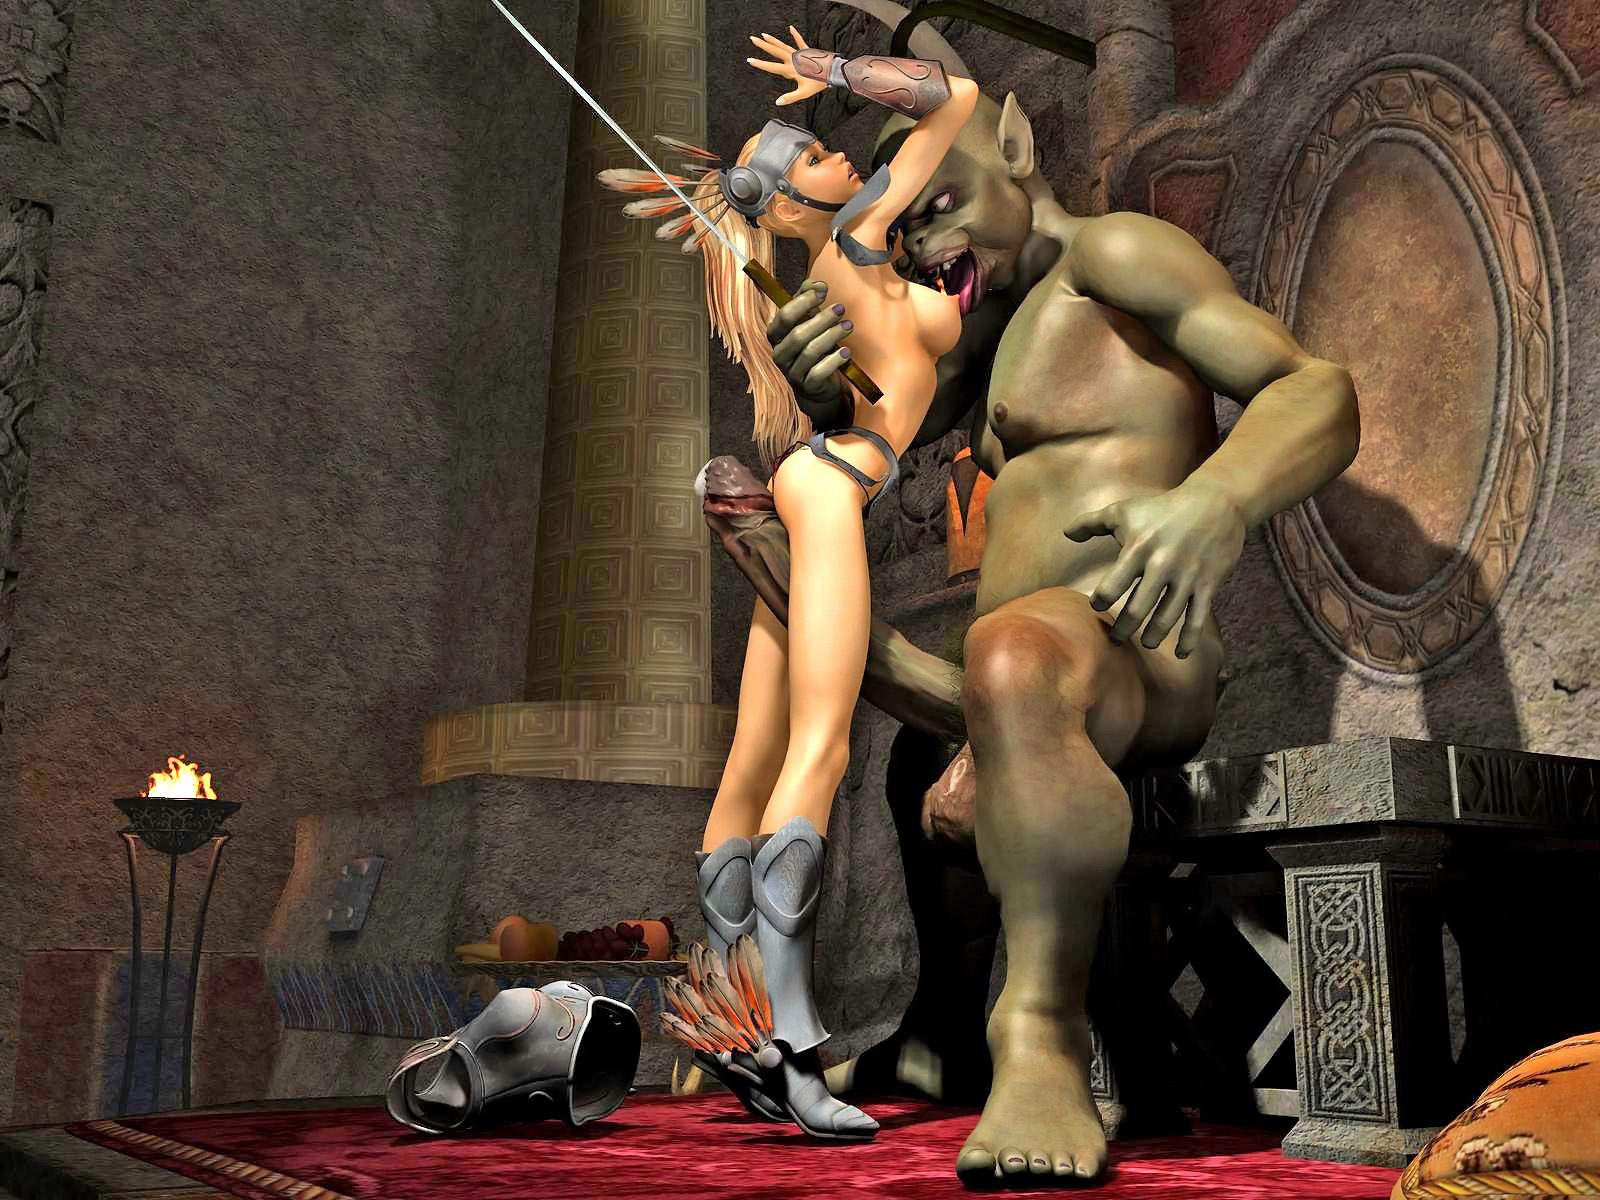 Erotic warrior women capture males sexy toons